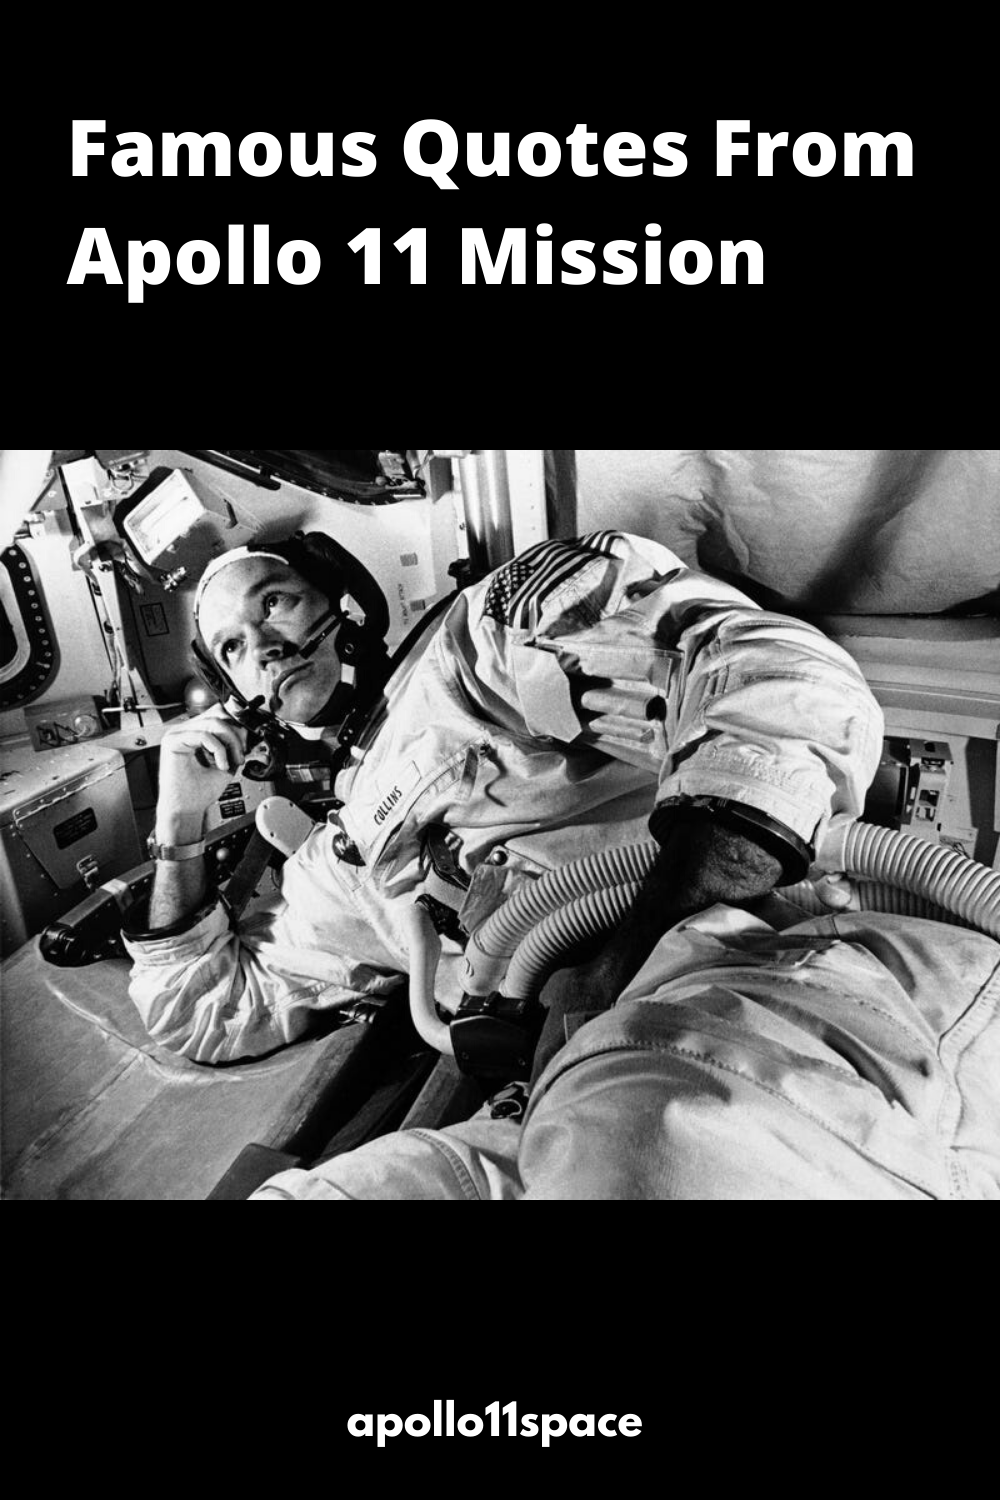 Famous Quotes From Apollo 11 Astronauts (With images